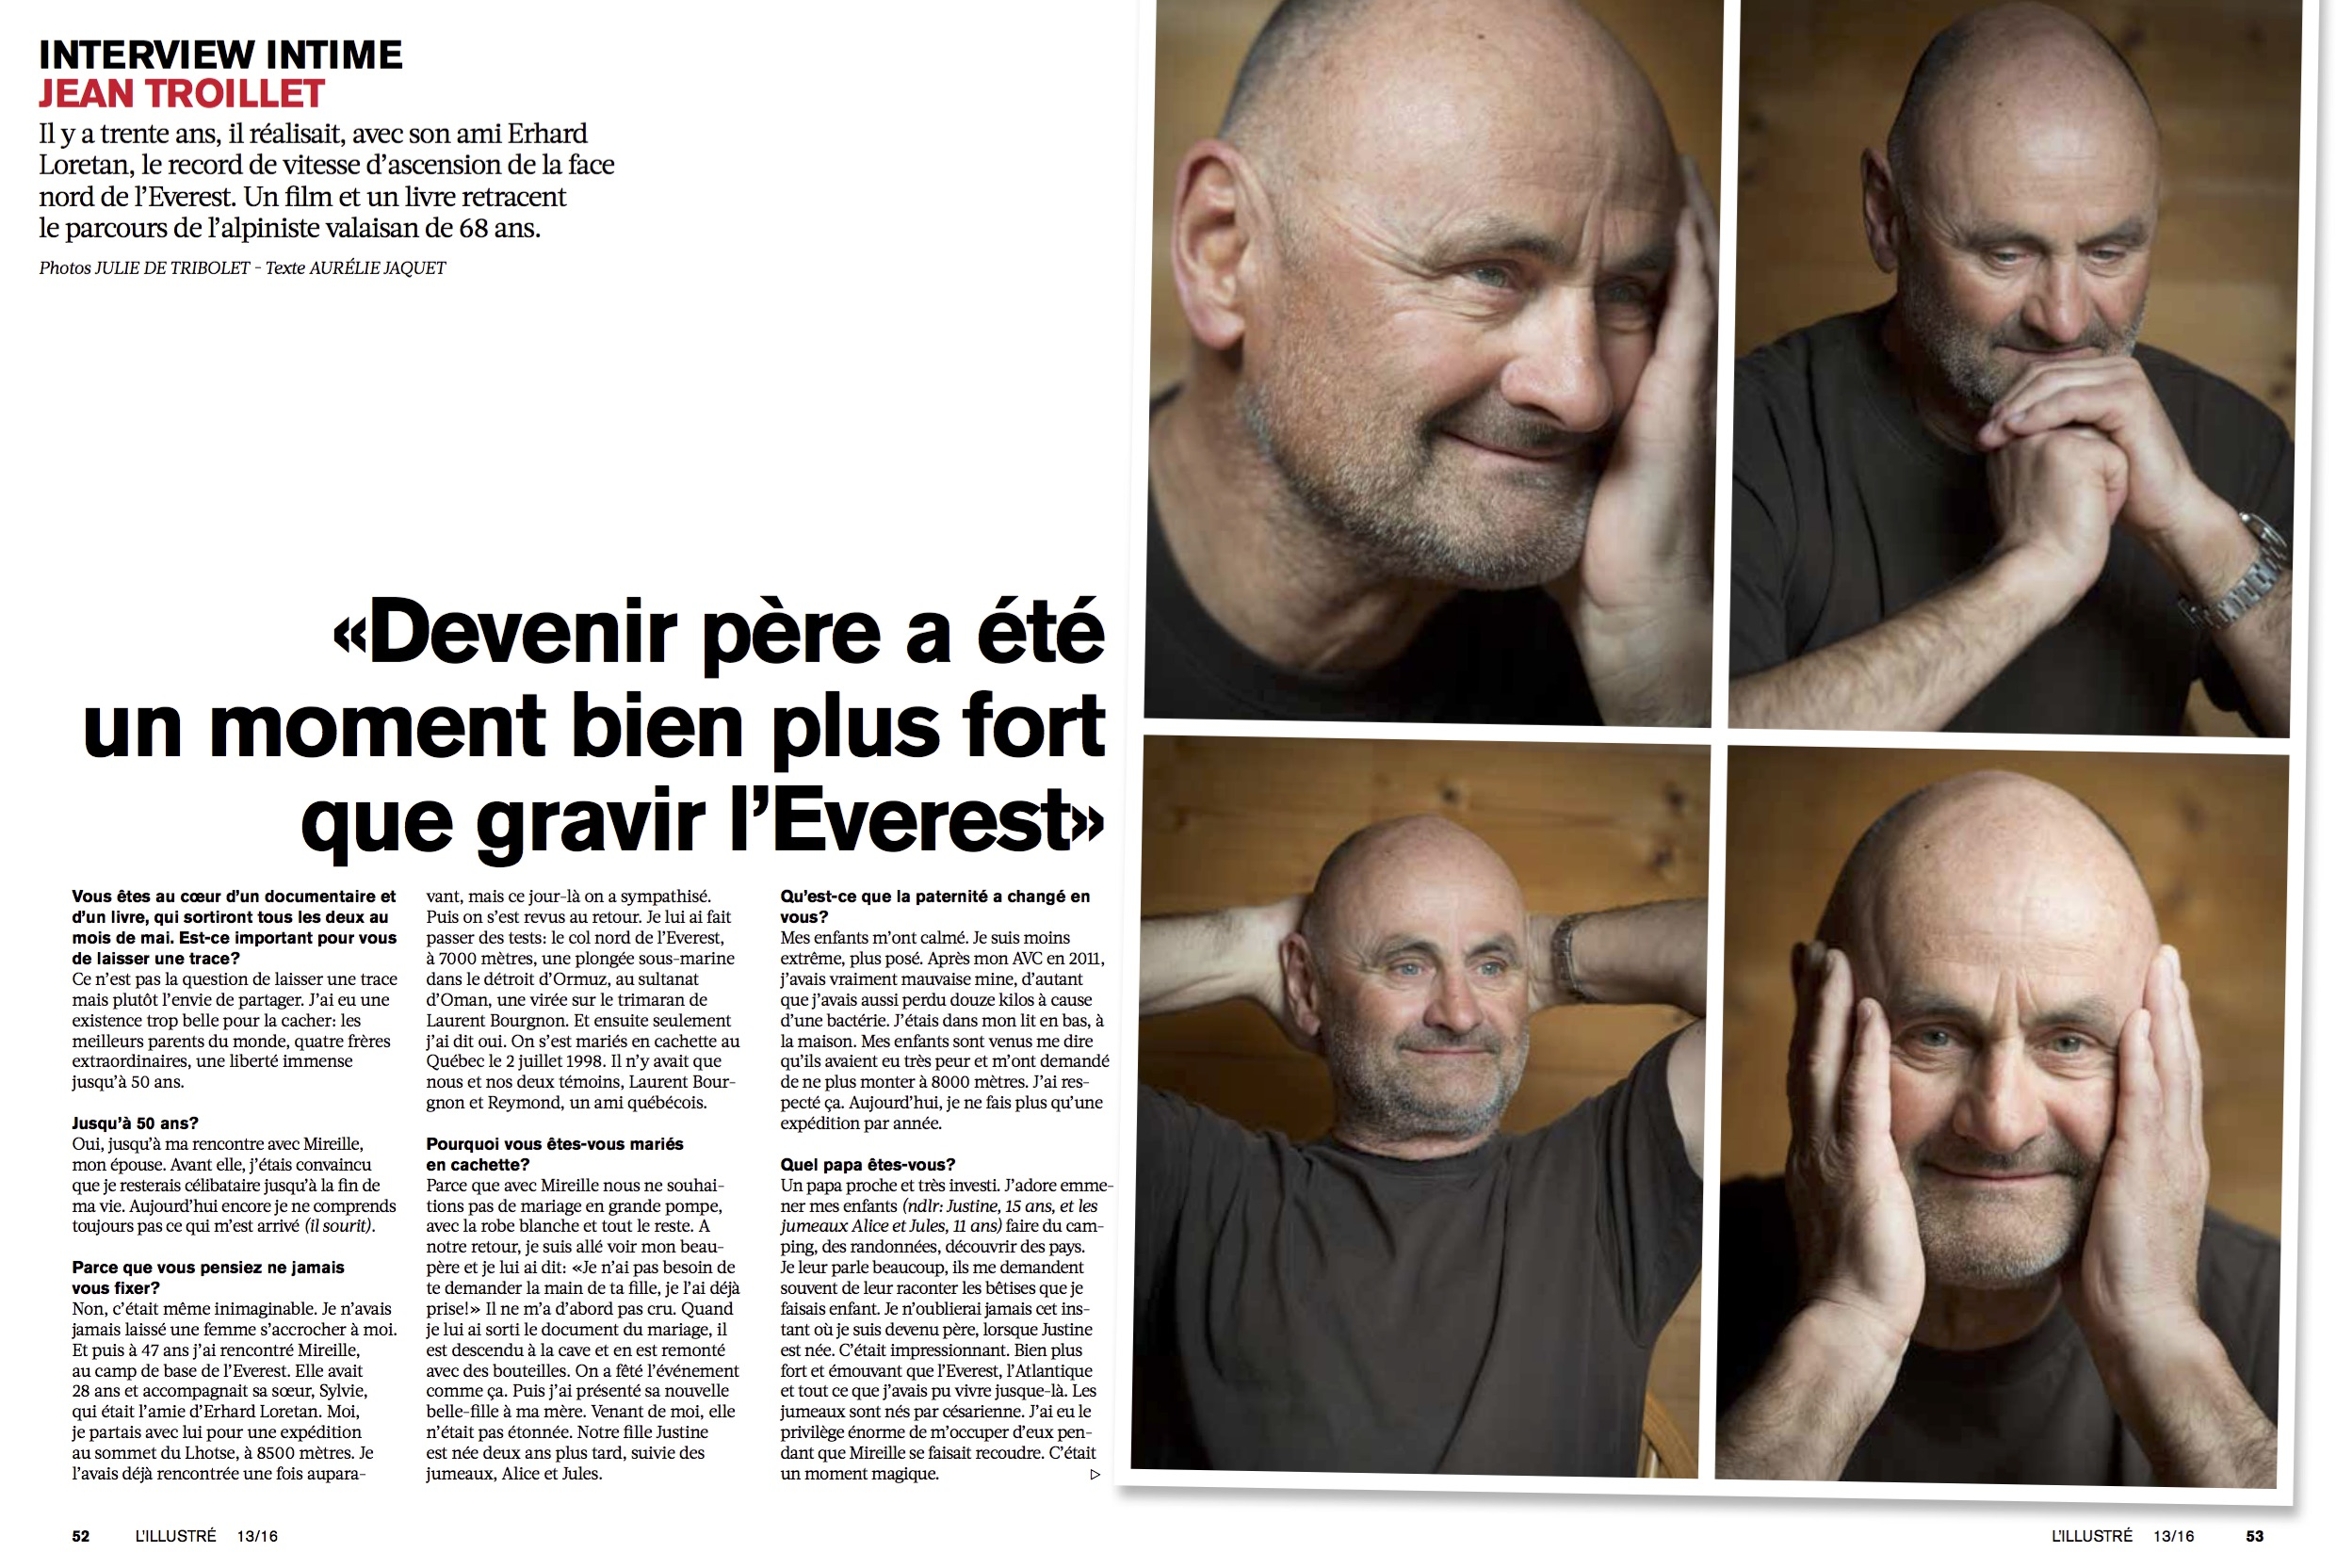 Illustre_30 mars-Jean Troillet interview intime